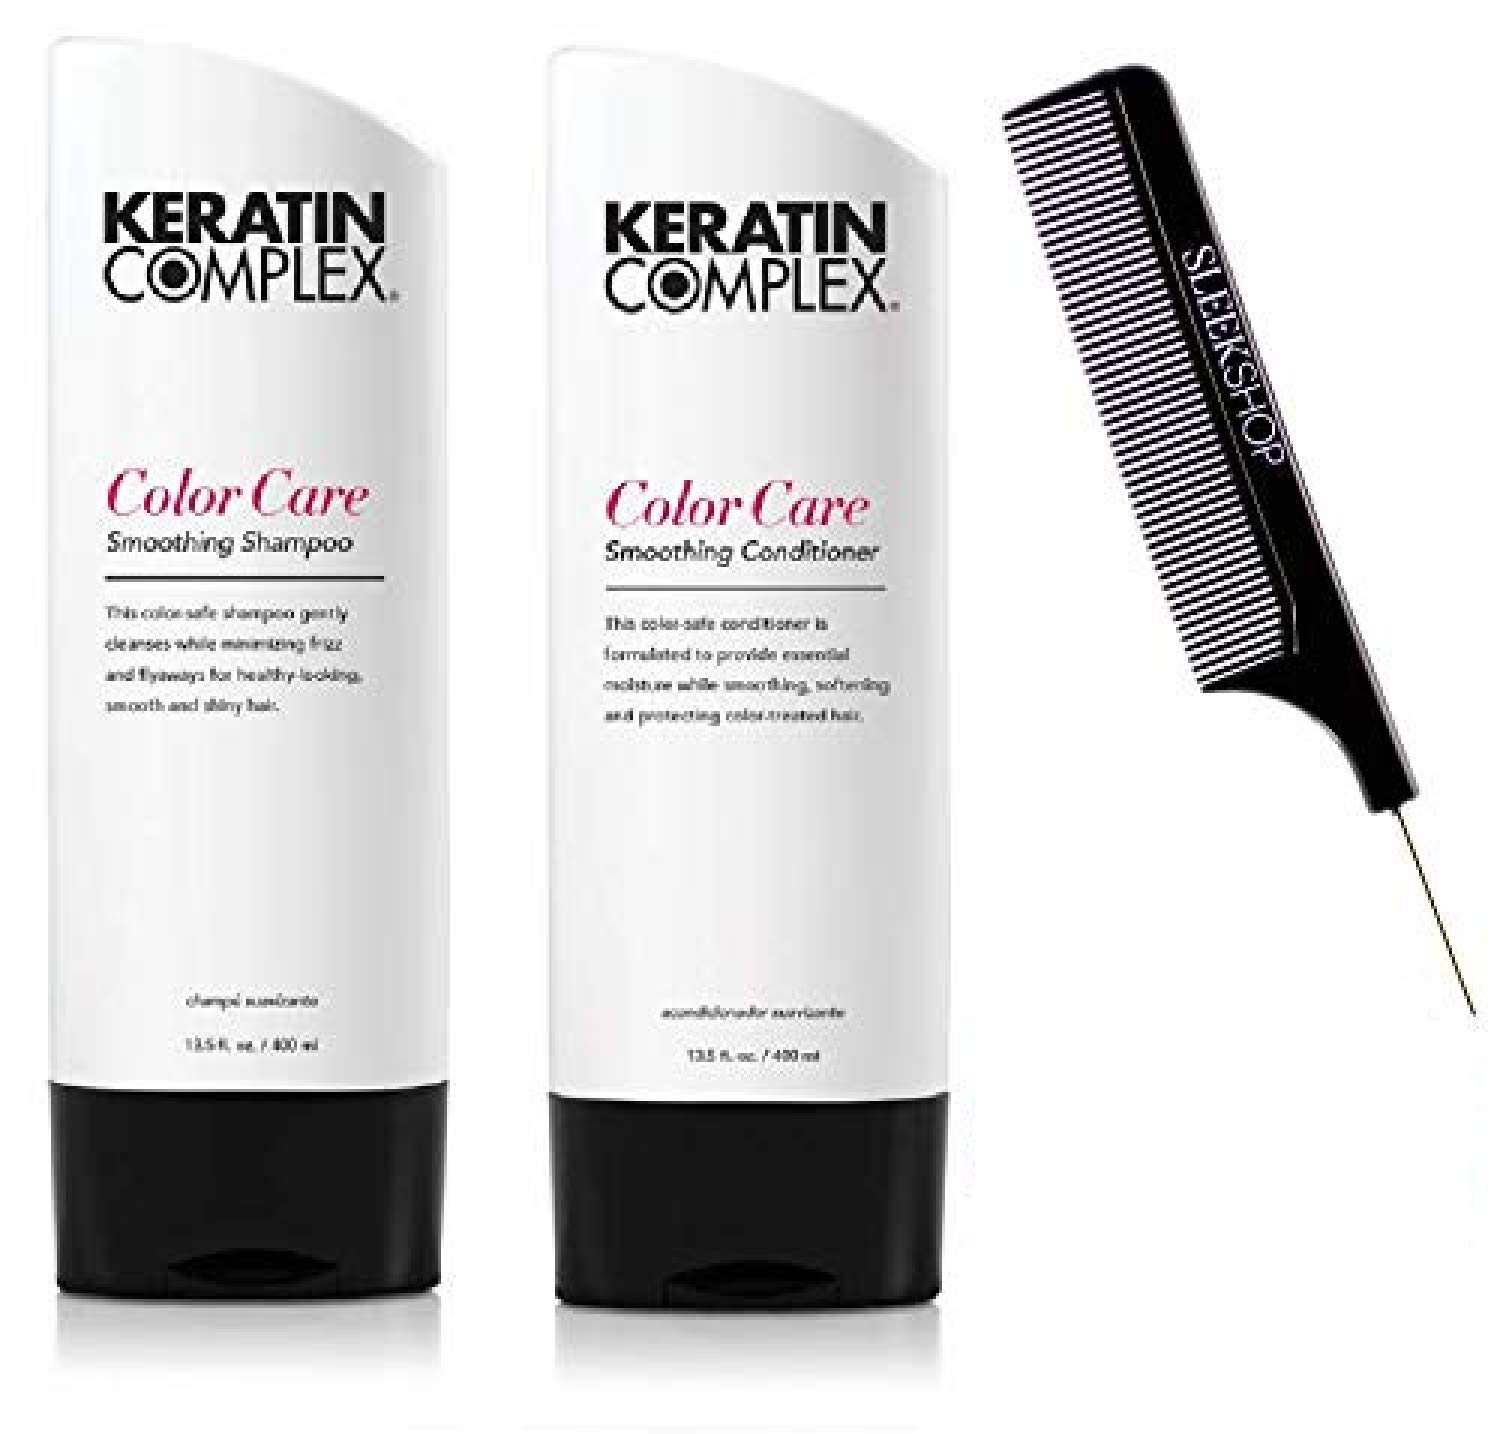 Keratin Complex COLOR CARE Smoothing Shampoo & Conditioner DUO SET (w/Sleek Comb) Frizz-Fighting, No Added Sodium Chloride (13.5 oz - ORIGINAL DUO KIT)